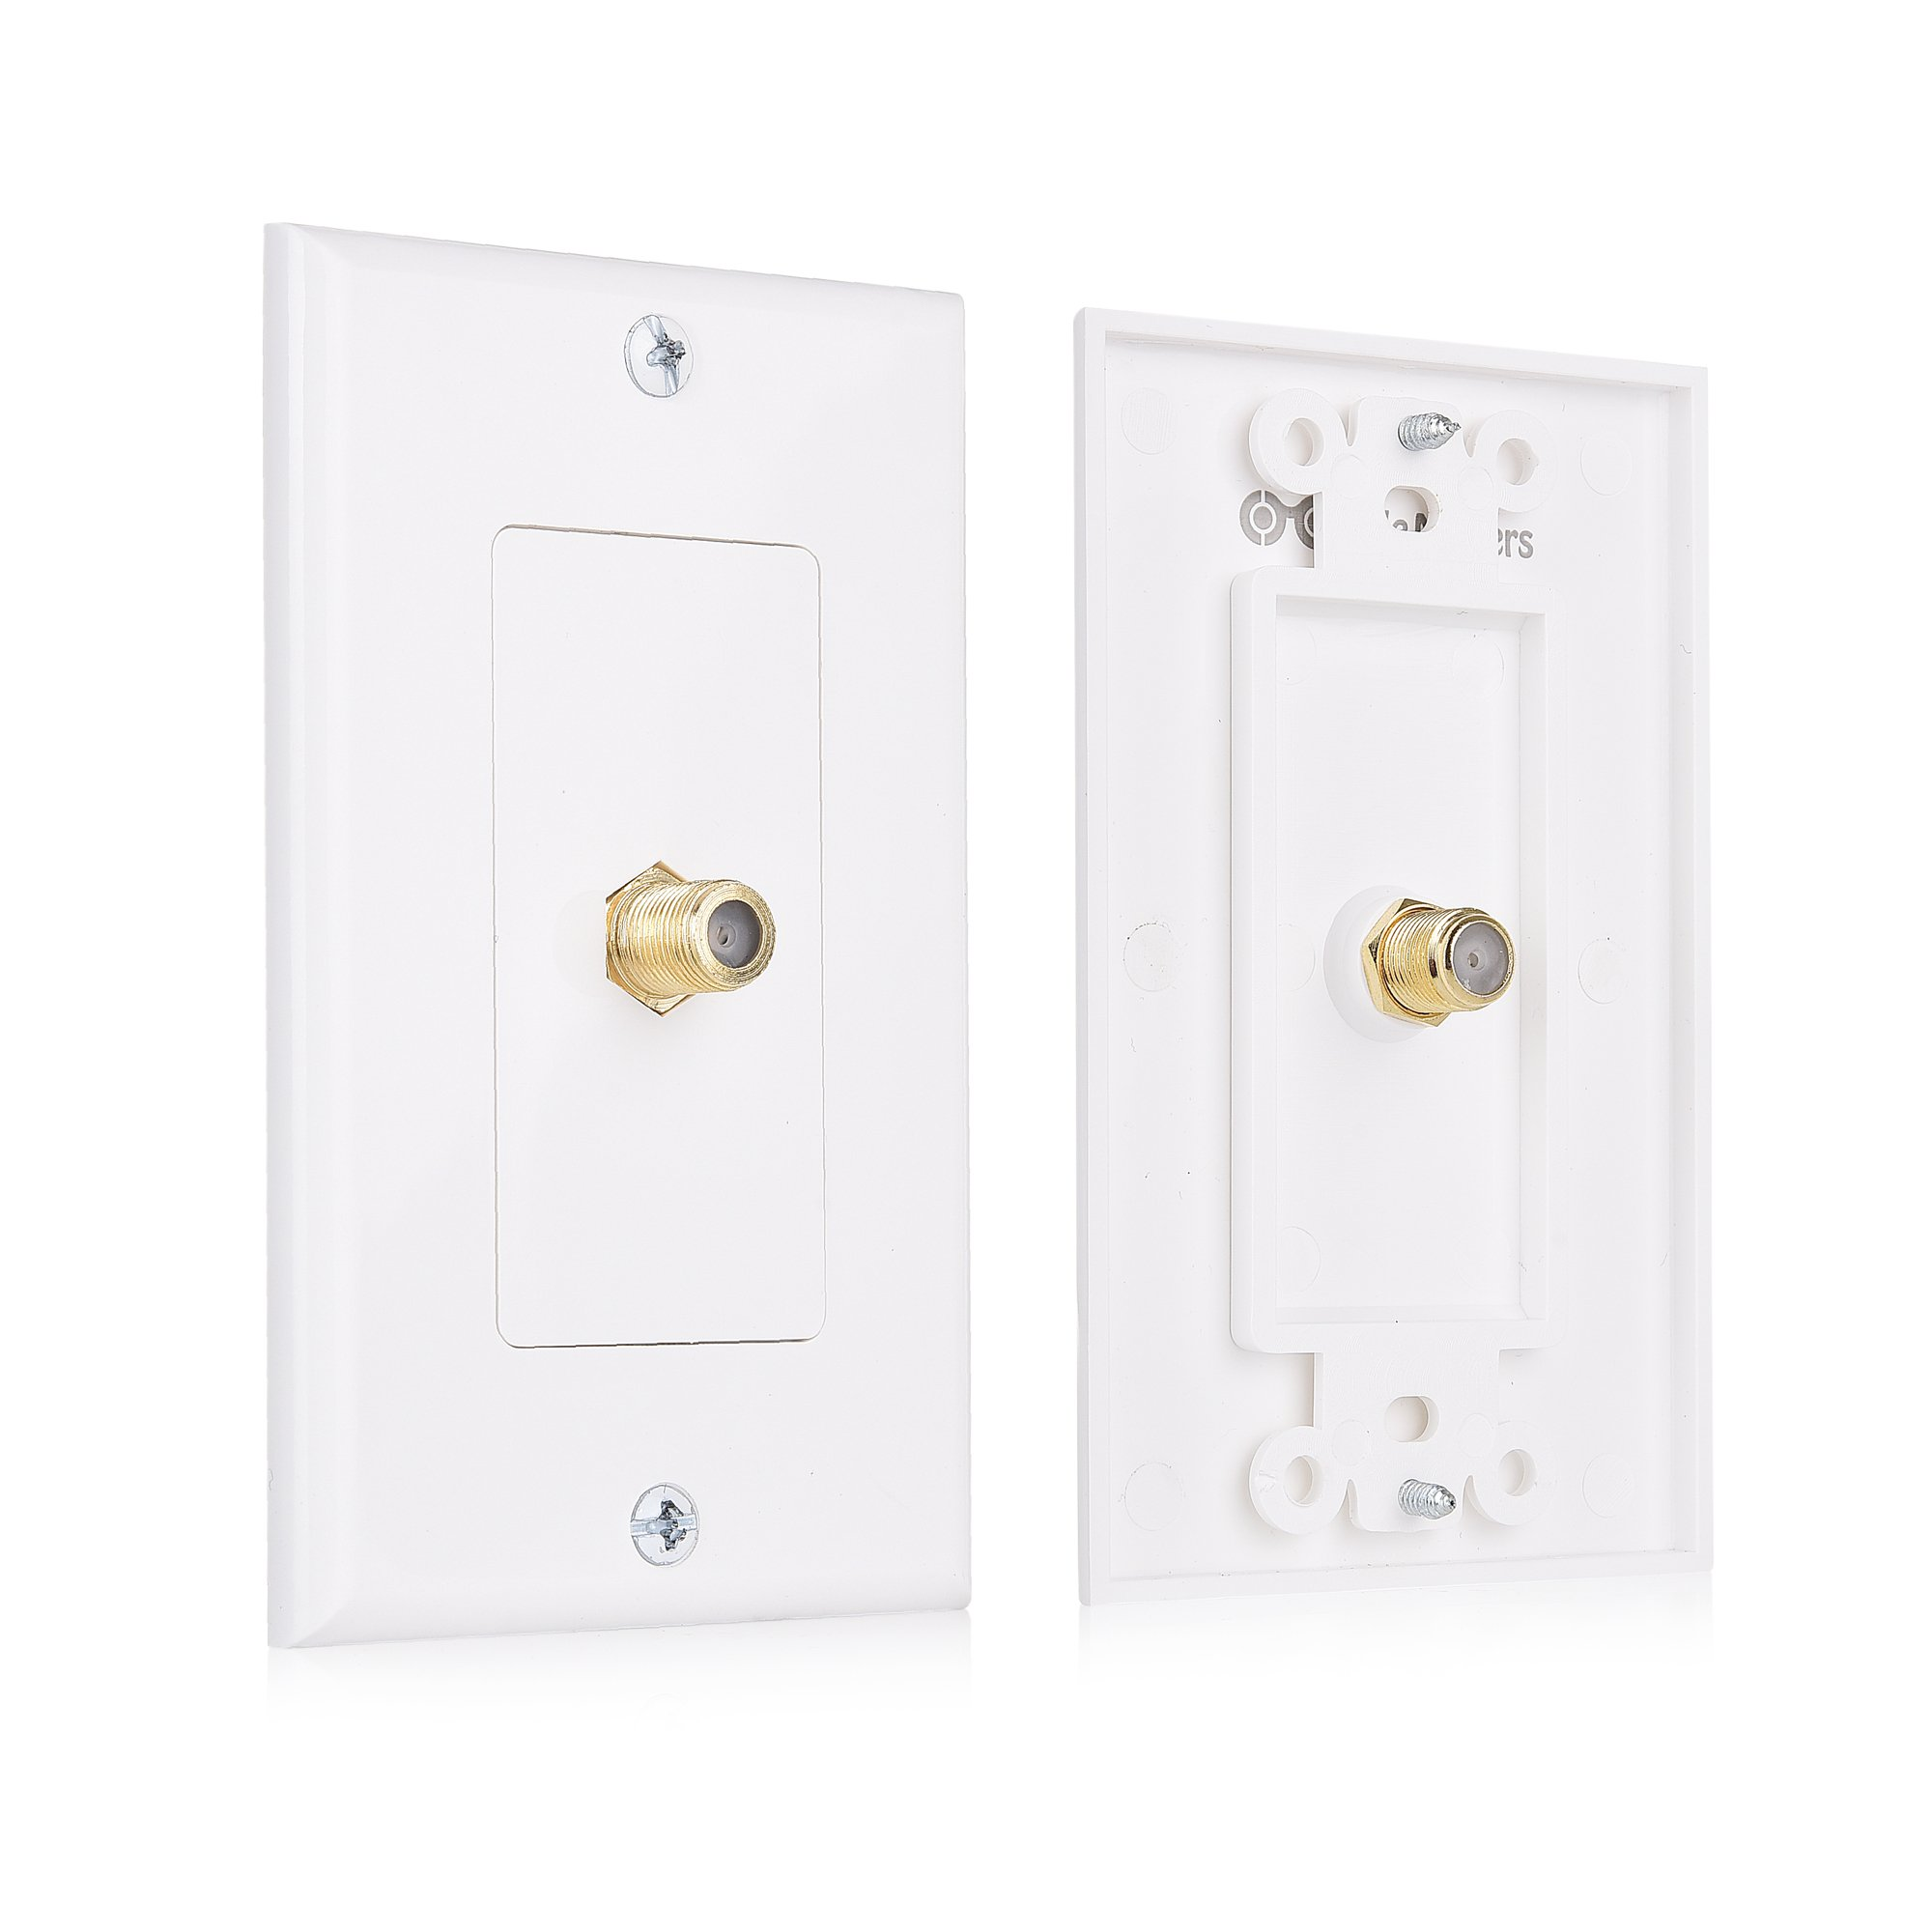 Cable Matters 2-Pack 1-Port TV Cable Wall Plate (Coax Wall Plate) in White